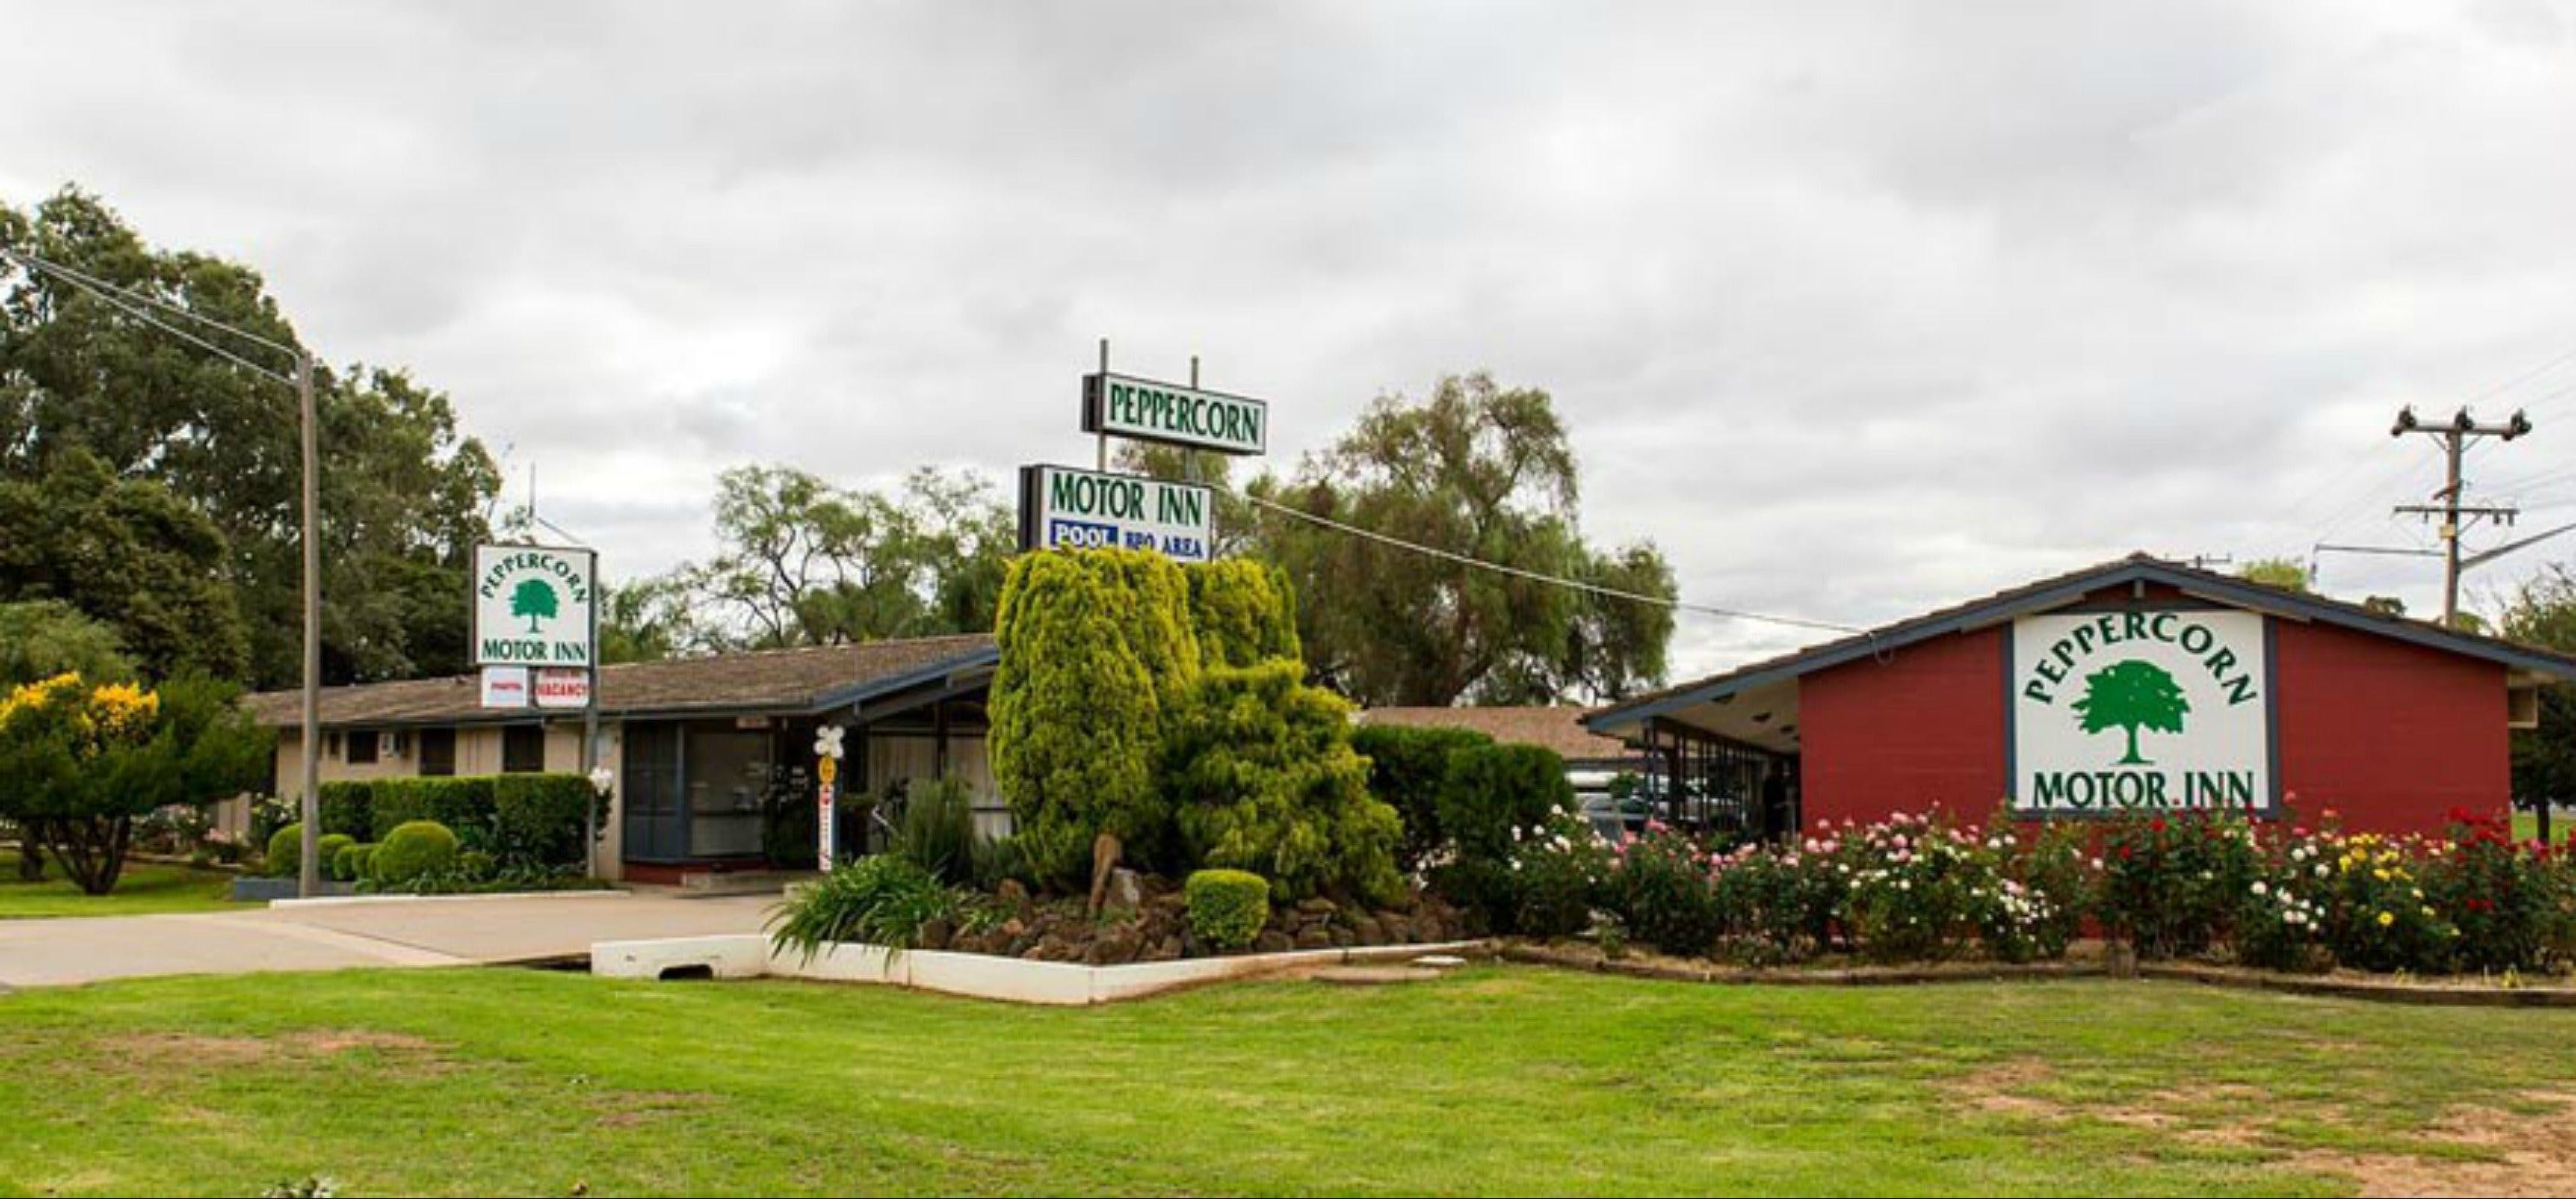 Peppercorn Motor Inn - Tourism Brisbane